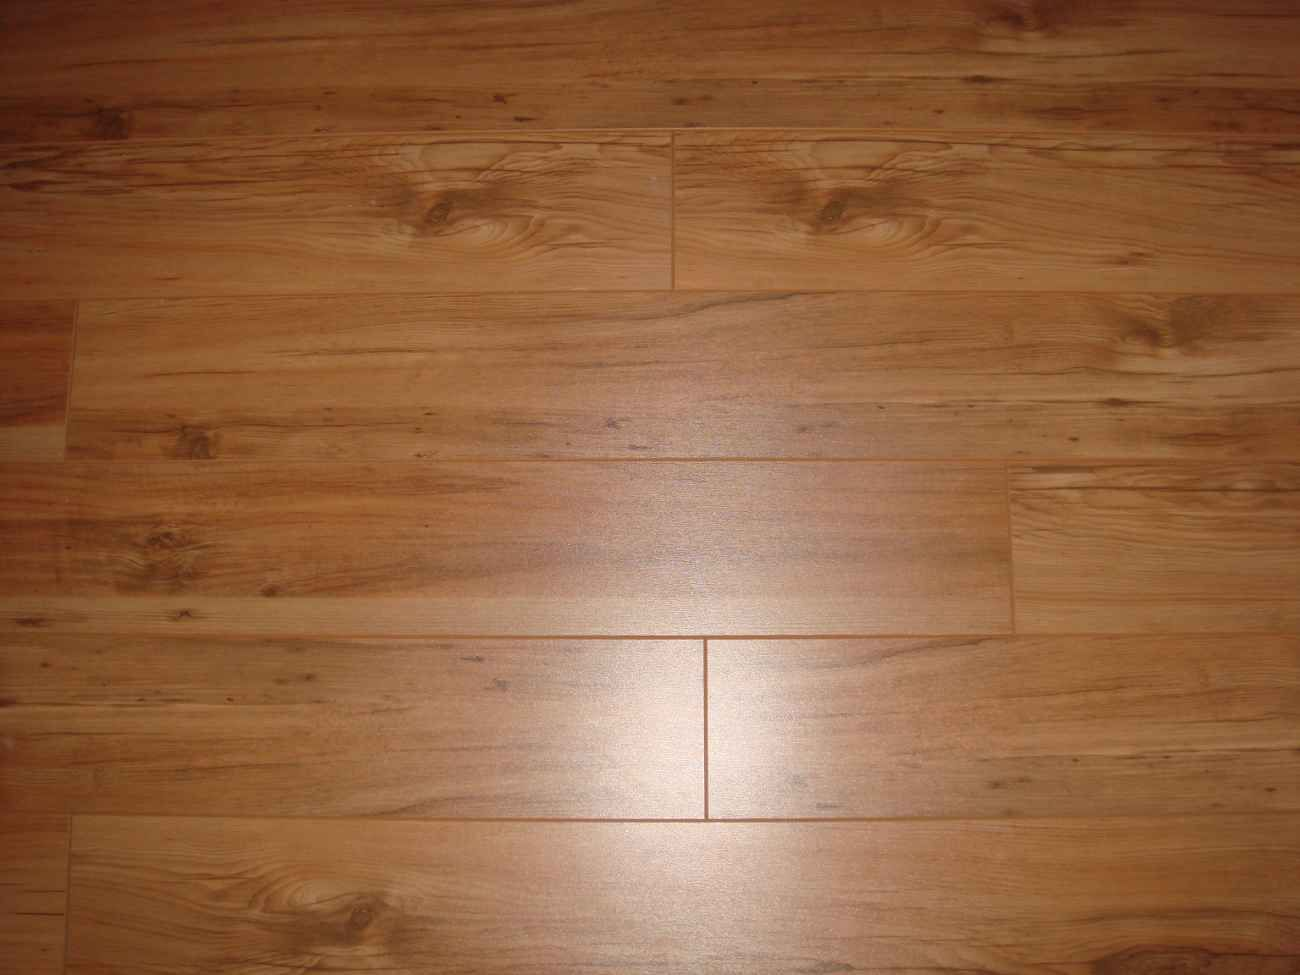 Kitchen Ceramic Tile Flooring Ceramic Tile That Looks Like Wood Wooden Ceramic Tile Floors